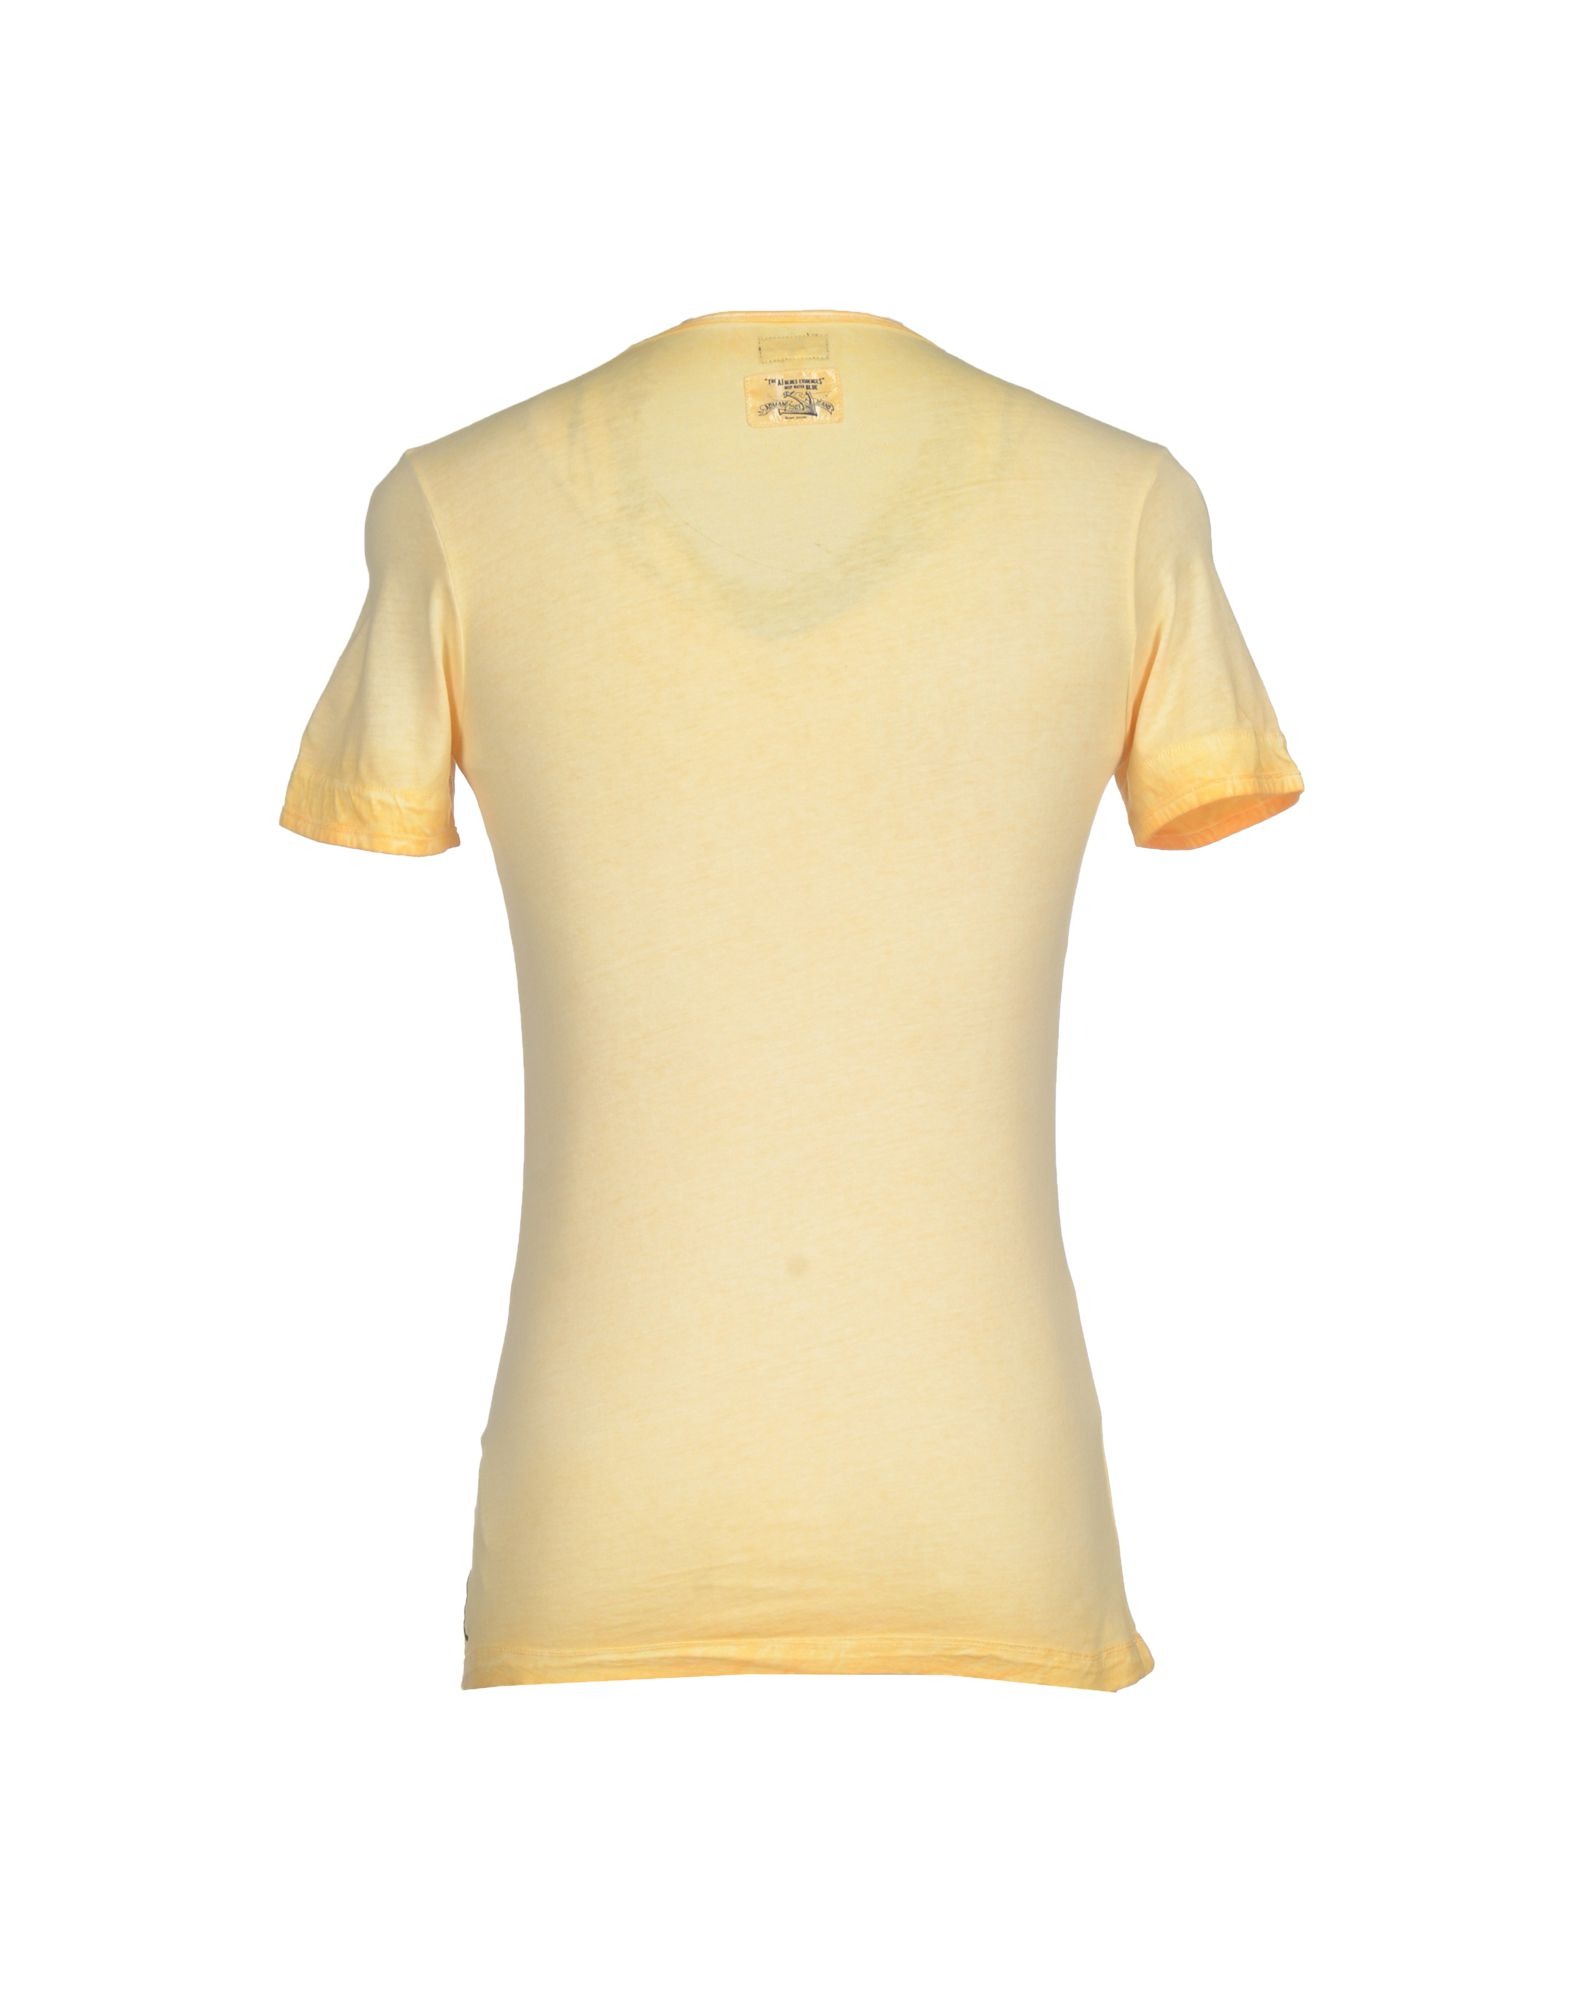 armani jeans t shirt in yellow for men light yellow lyst. Black Bedroom Furniture Sets. Home Design Ideas